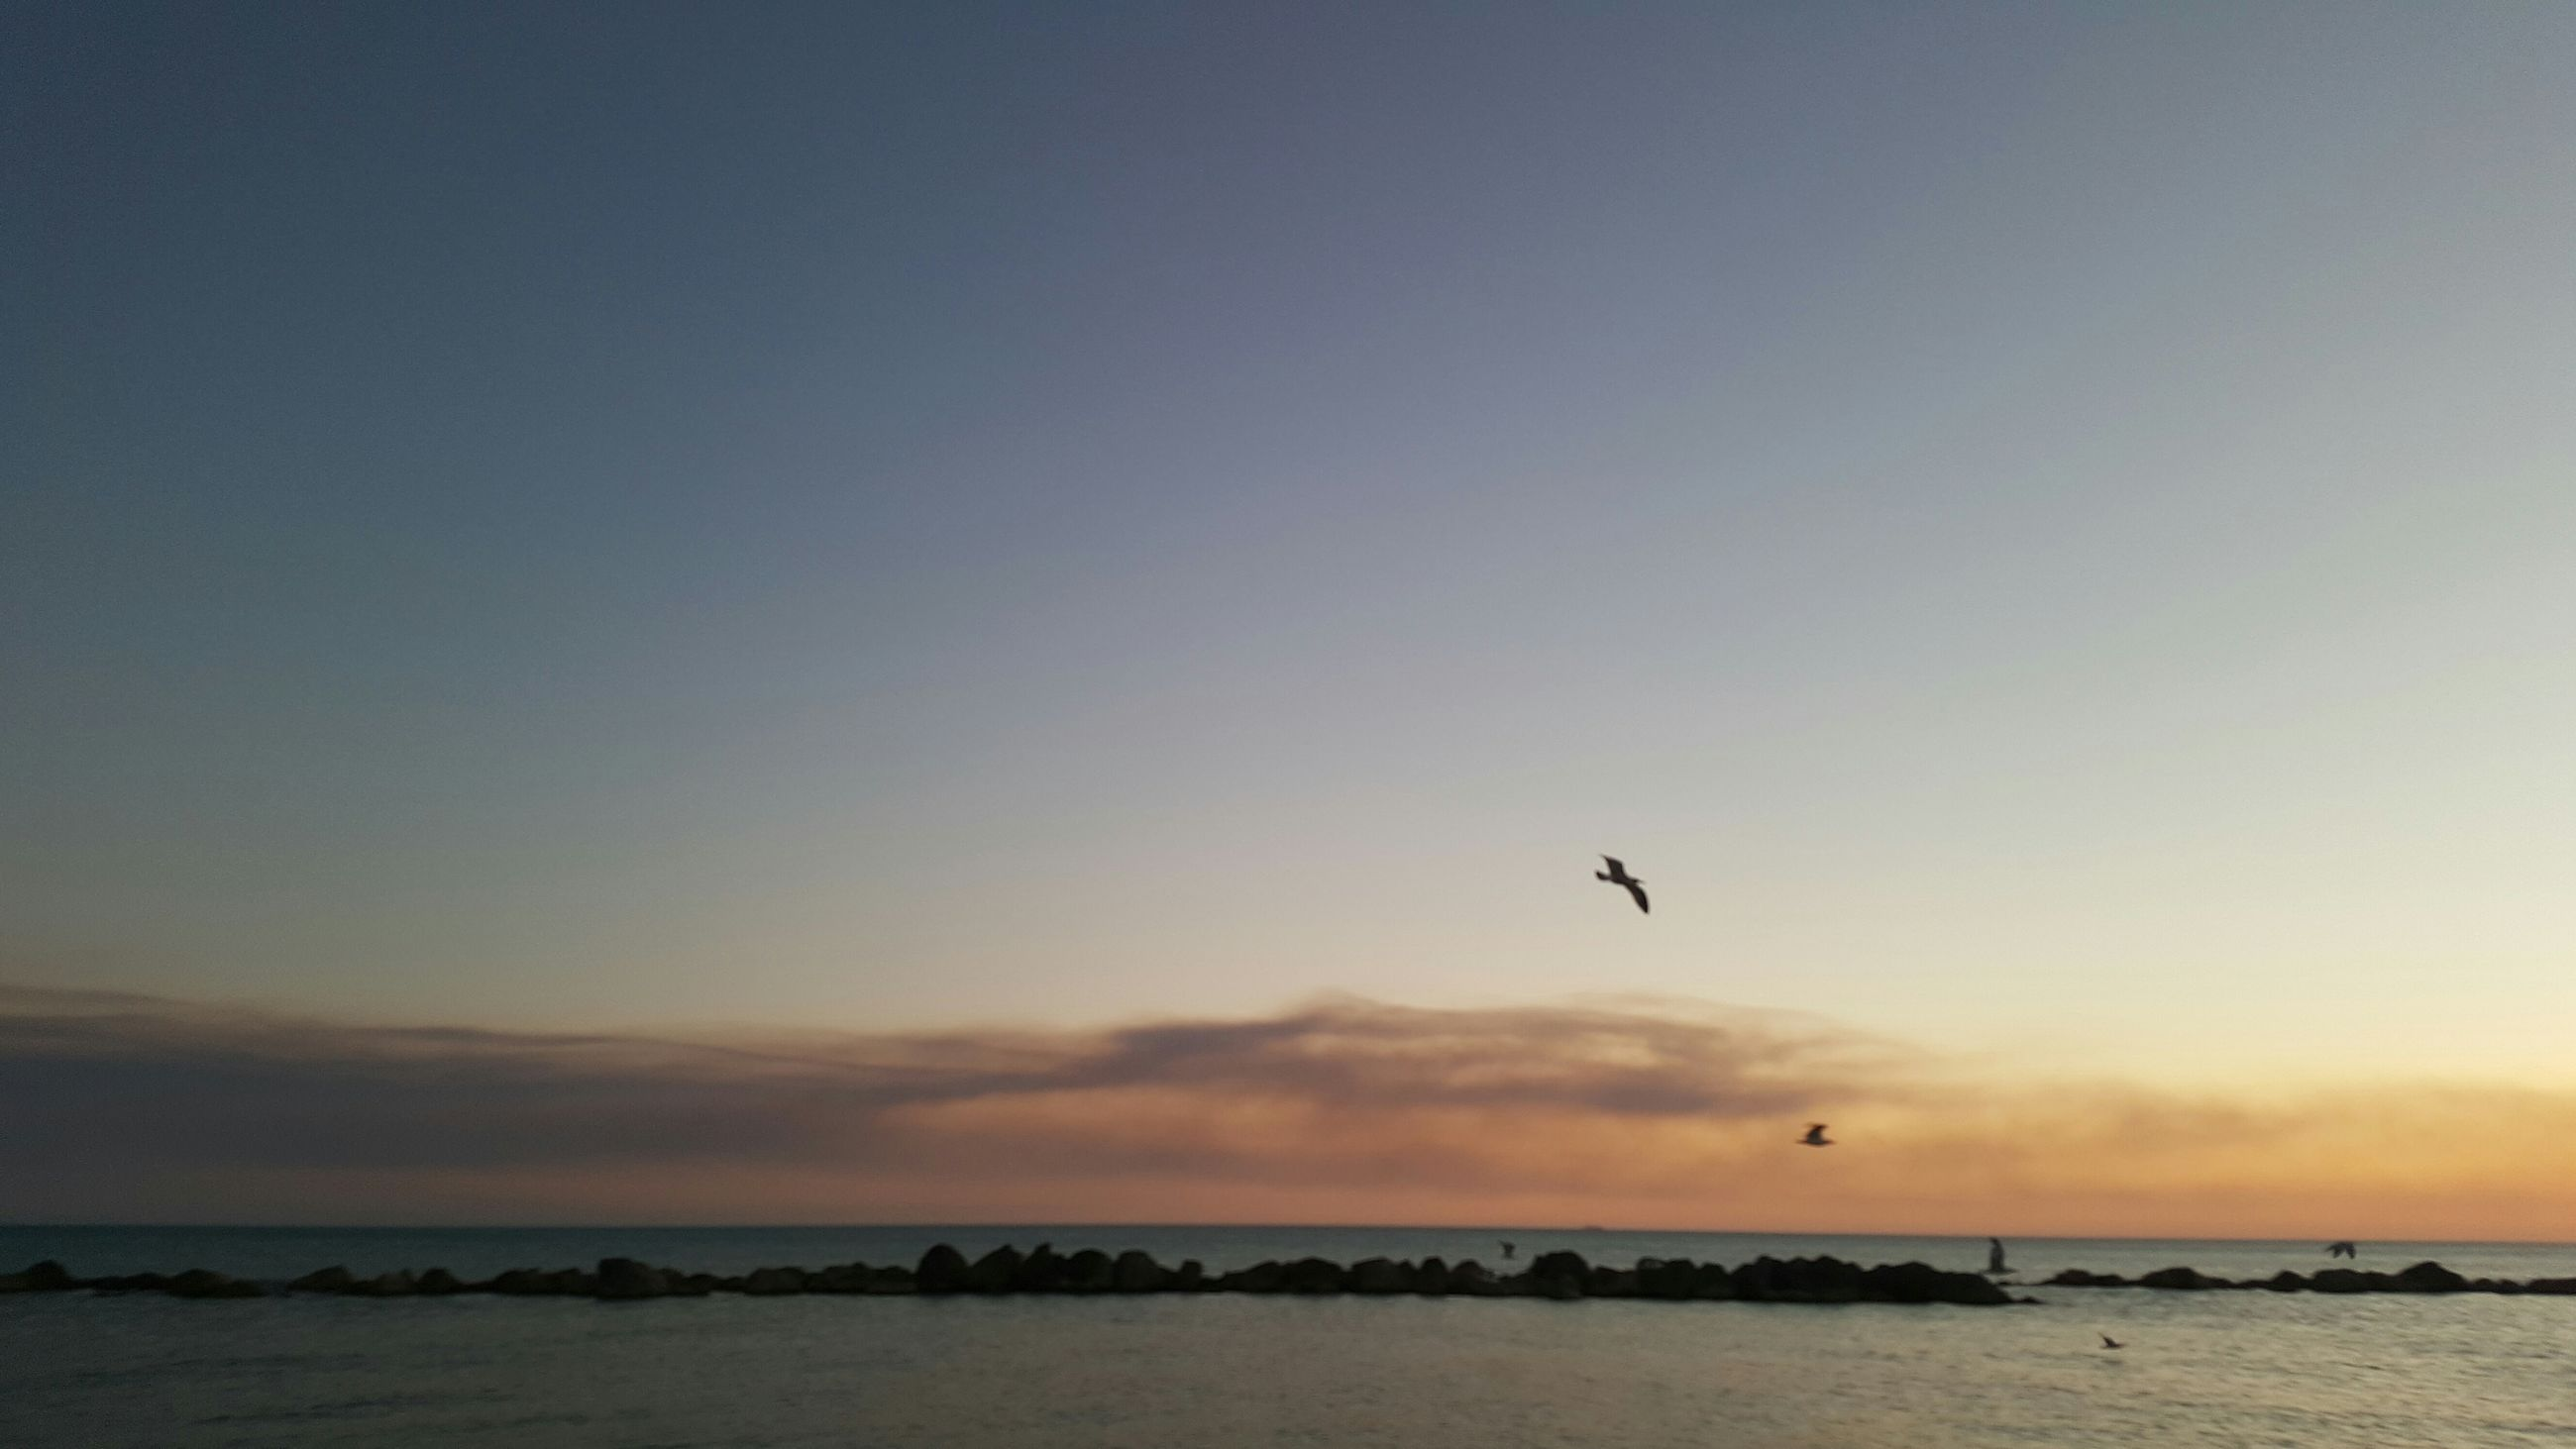 flying, sea, bird, sunset, water, animal themes, sky, nature, outdoors, animals in the wild, beauty in nature, no people, one animal, horizon over water, scenics, beach, togetherness, day, drone